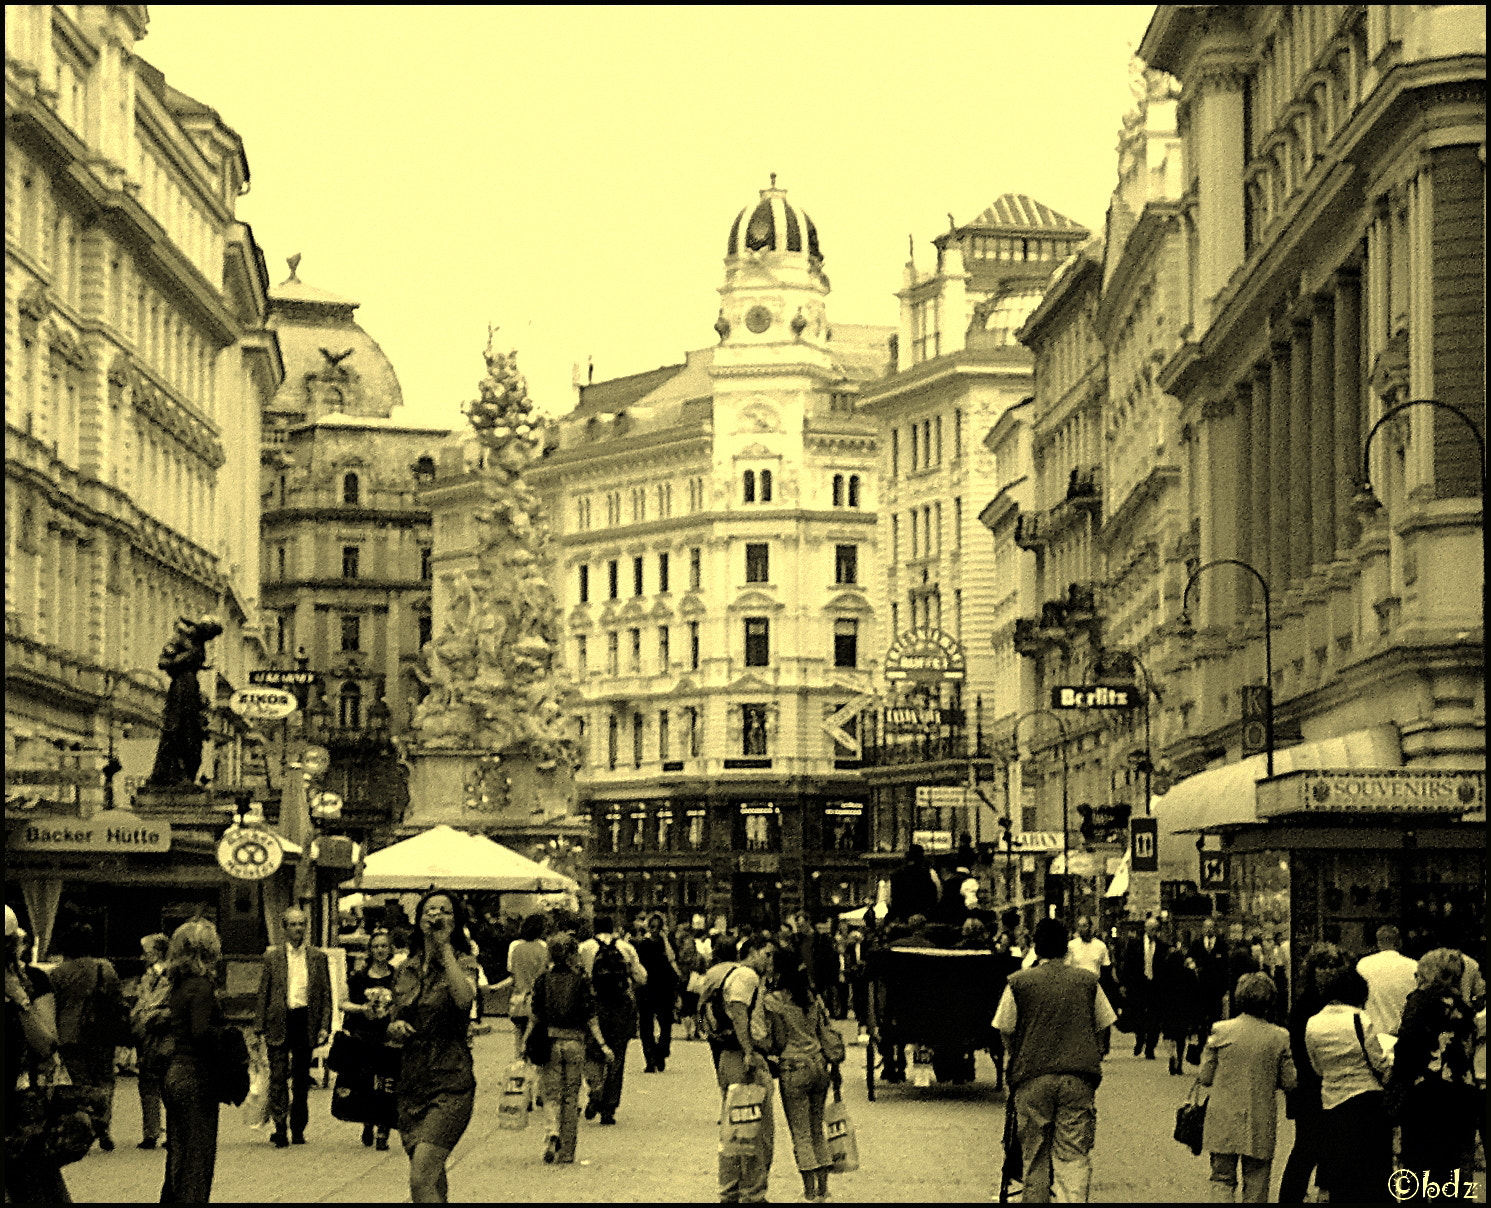 Photograph good old Vienna ;) (city center) by Betty Ditscheid-Zweers on 500px